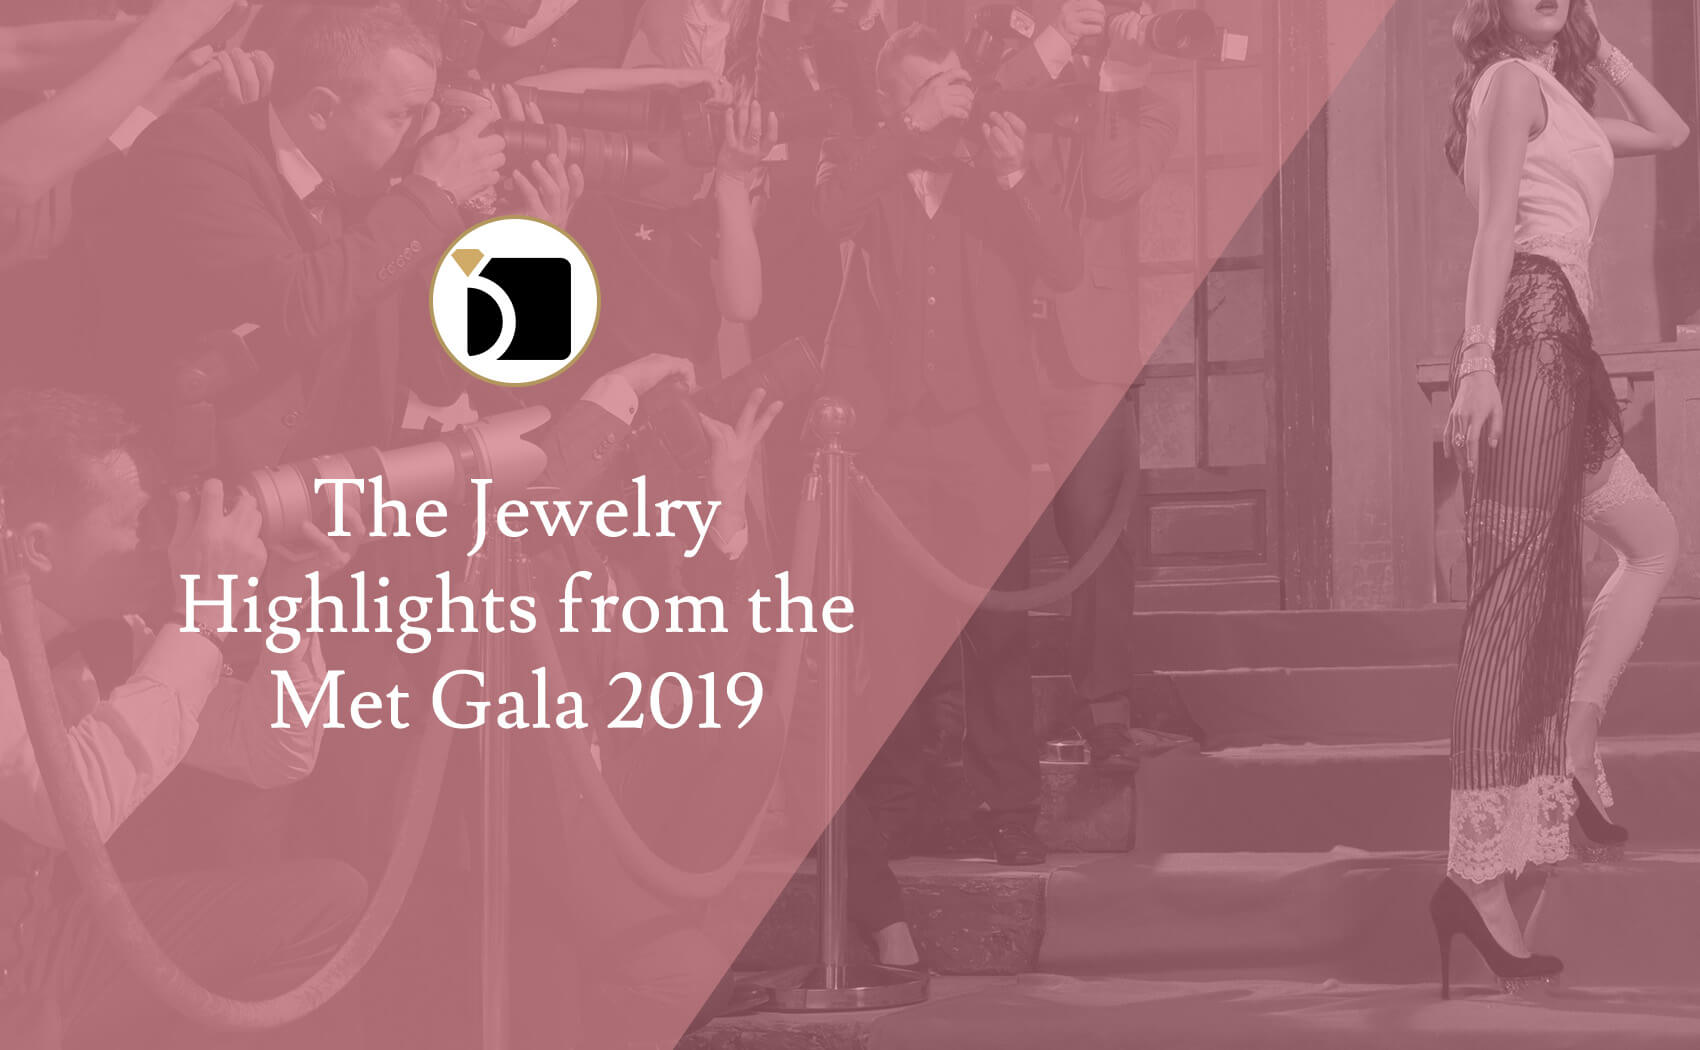 Image showcasing met gala 2019 jewelry graphic